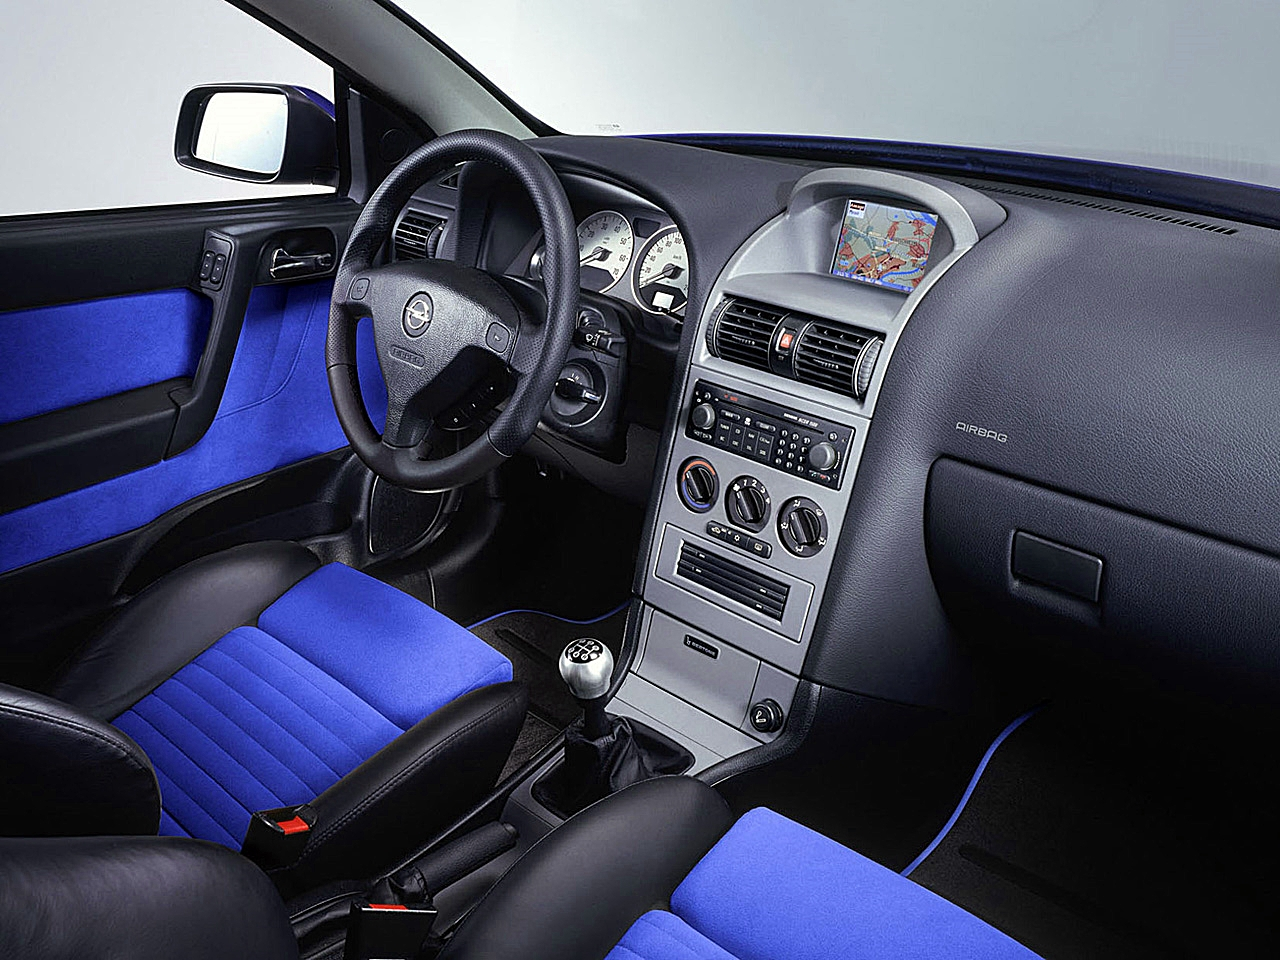 opel astra g cc 2 0 16v turbo opc 200 hp. Black Bedroom Furniture Sets. Home Design Ideas